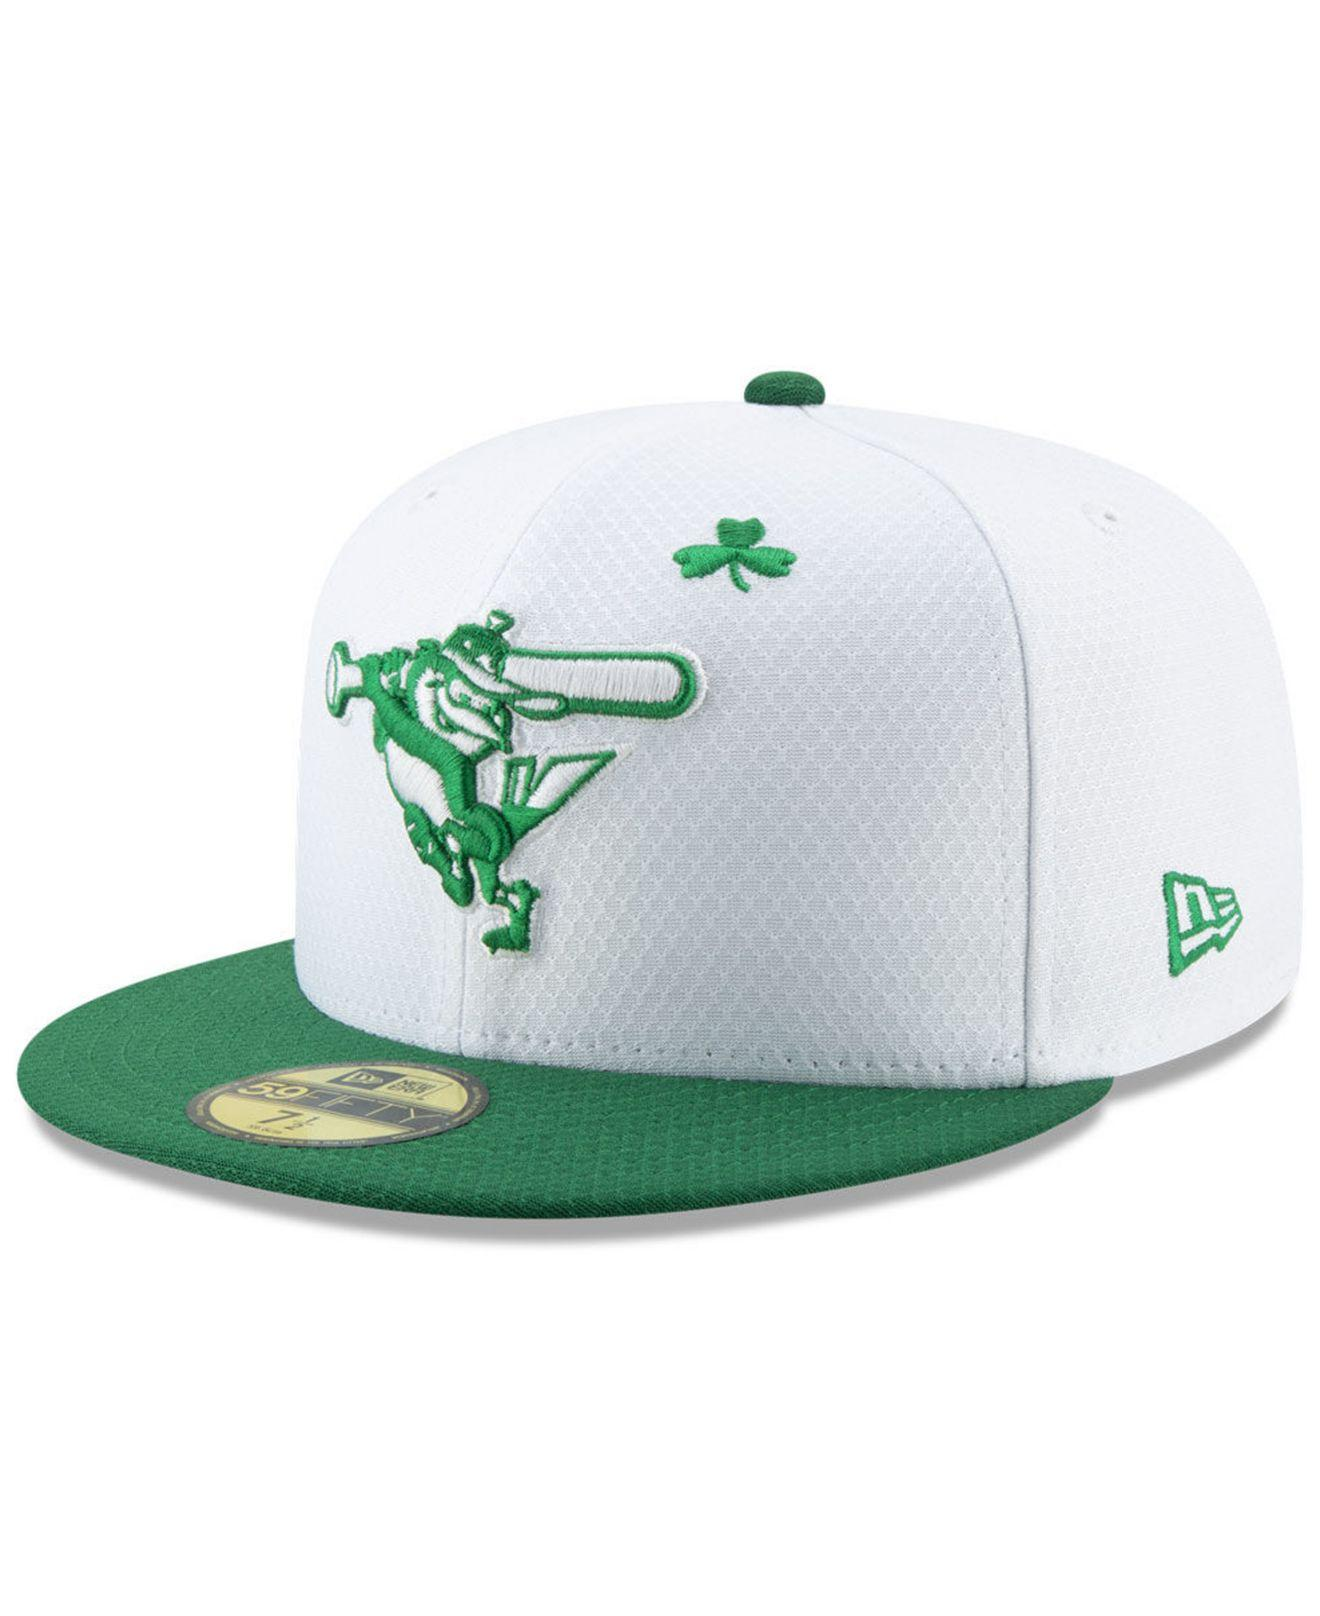 Lyst - KTZ Baltimore Orioles St. Pattys Day 59fifty-fitted Cap in ... 66469fc16ffe